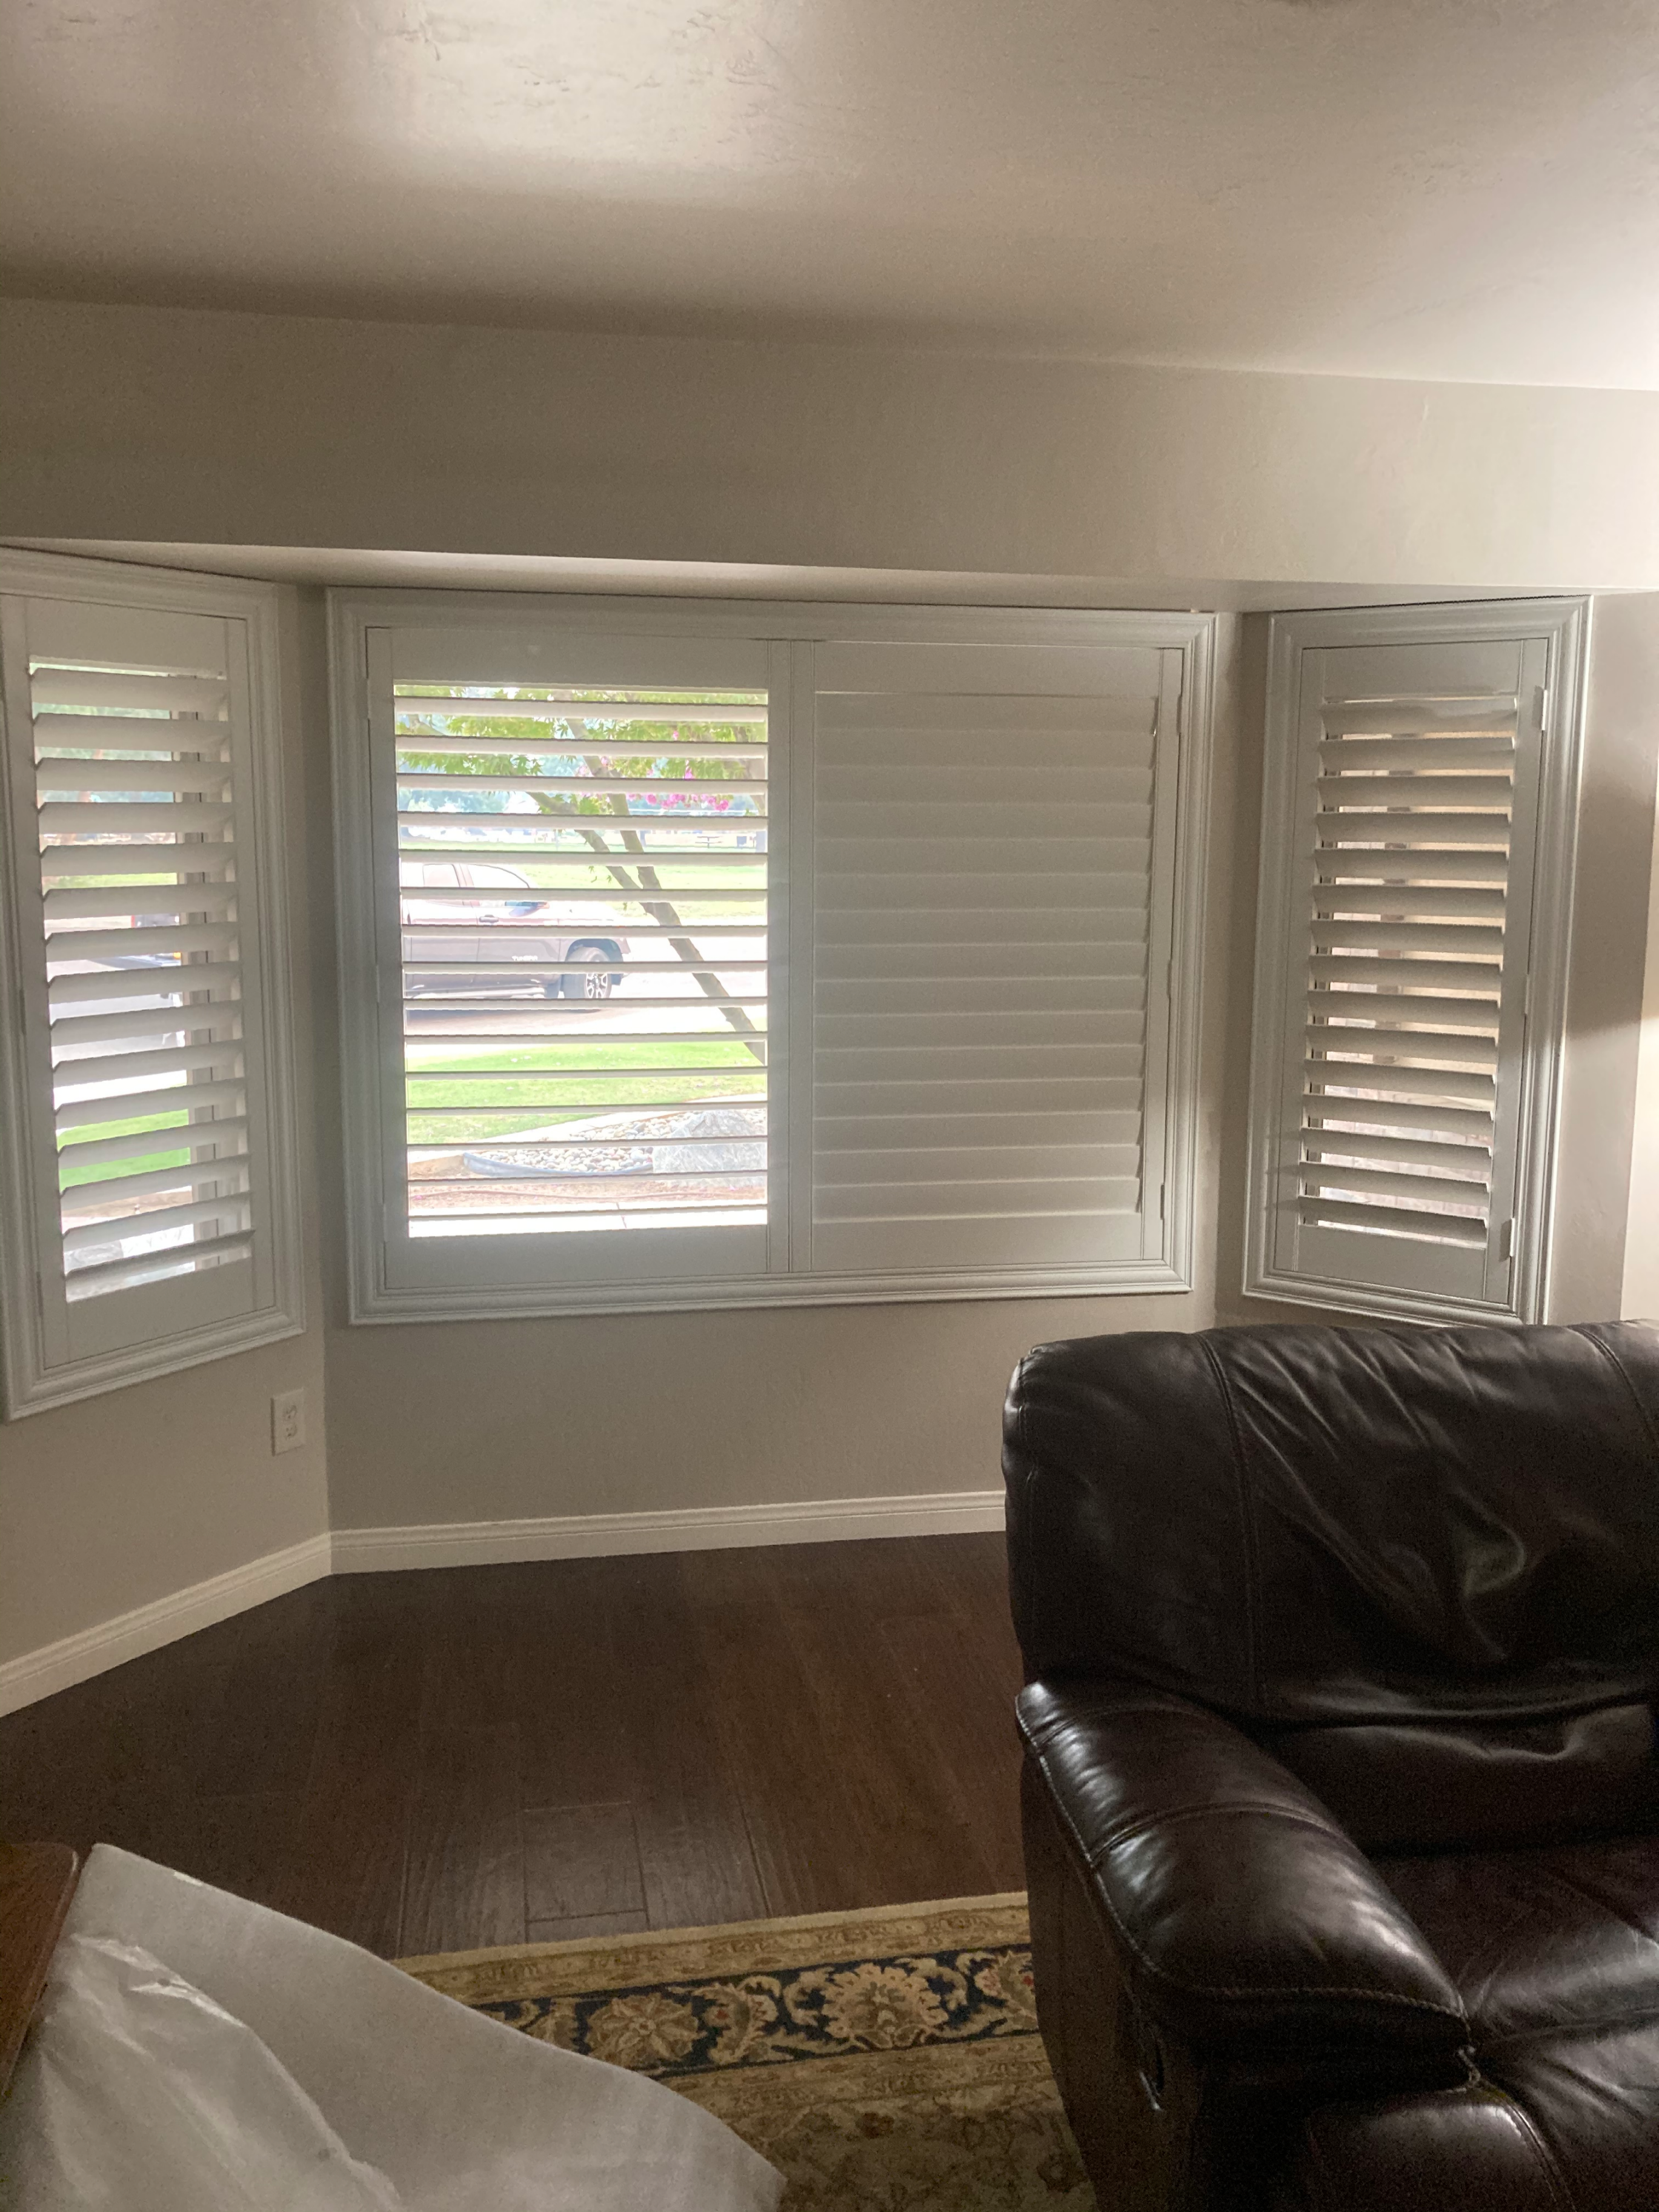 After Zero Clearance Application of a Shutter Install